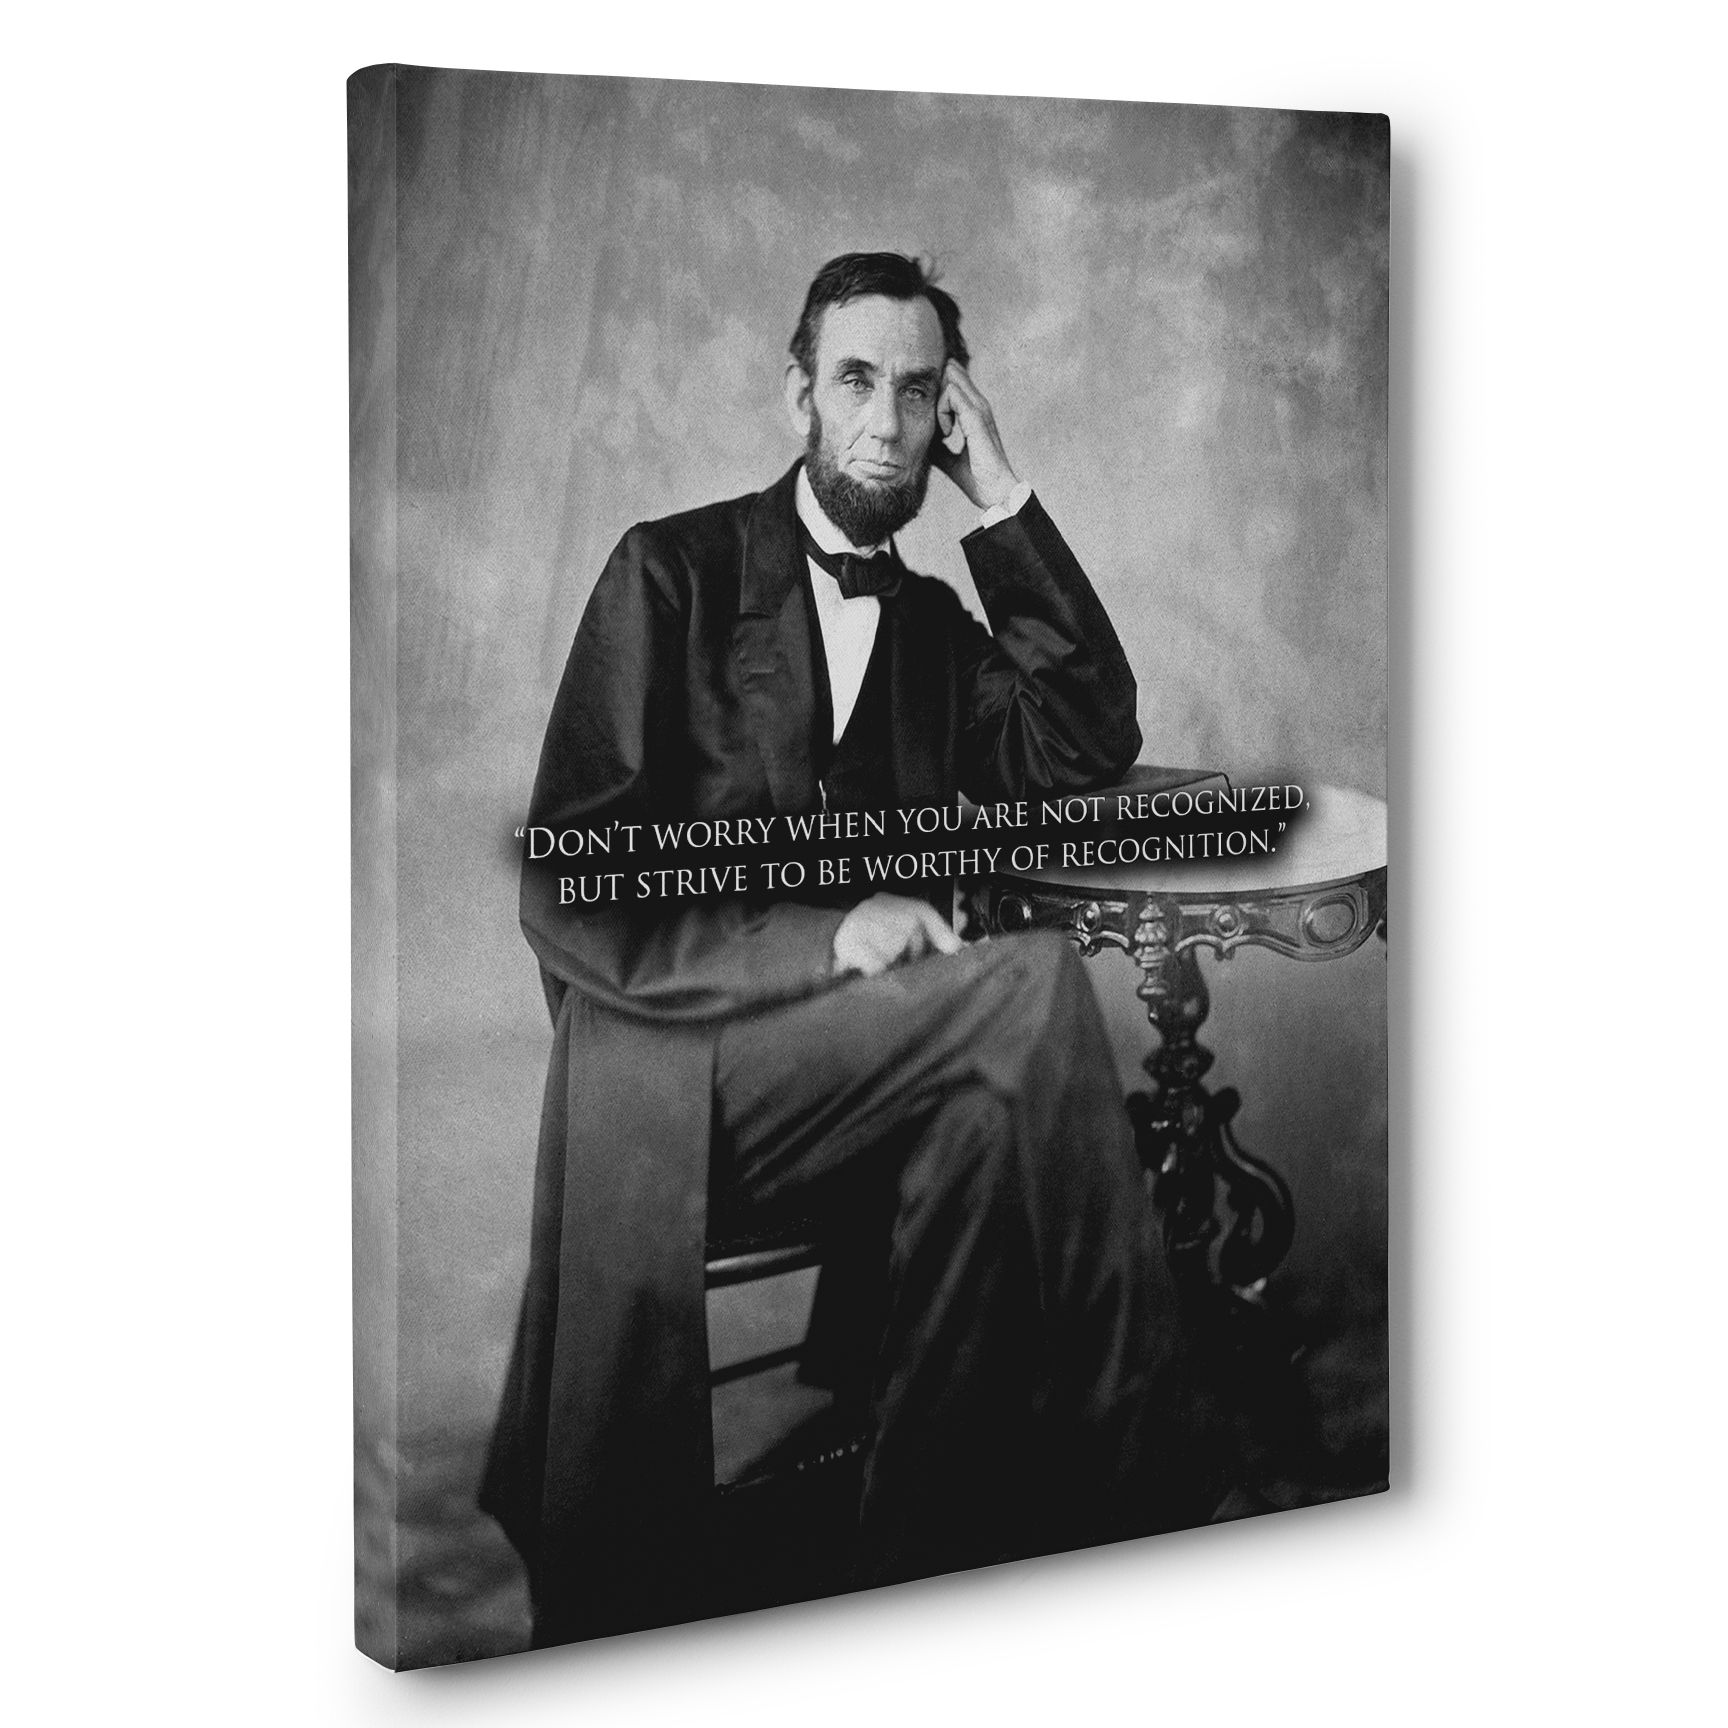 Buy A Hand Crafted Recognition Abraham Lincoln Motivation